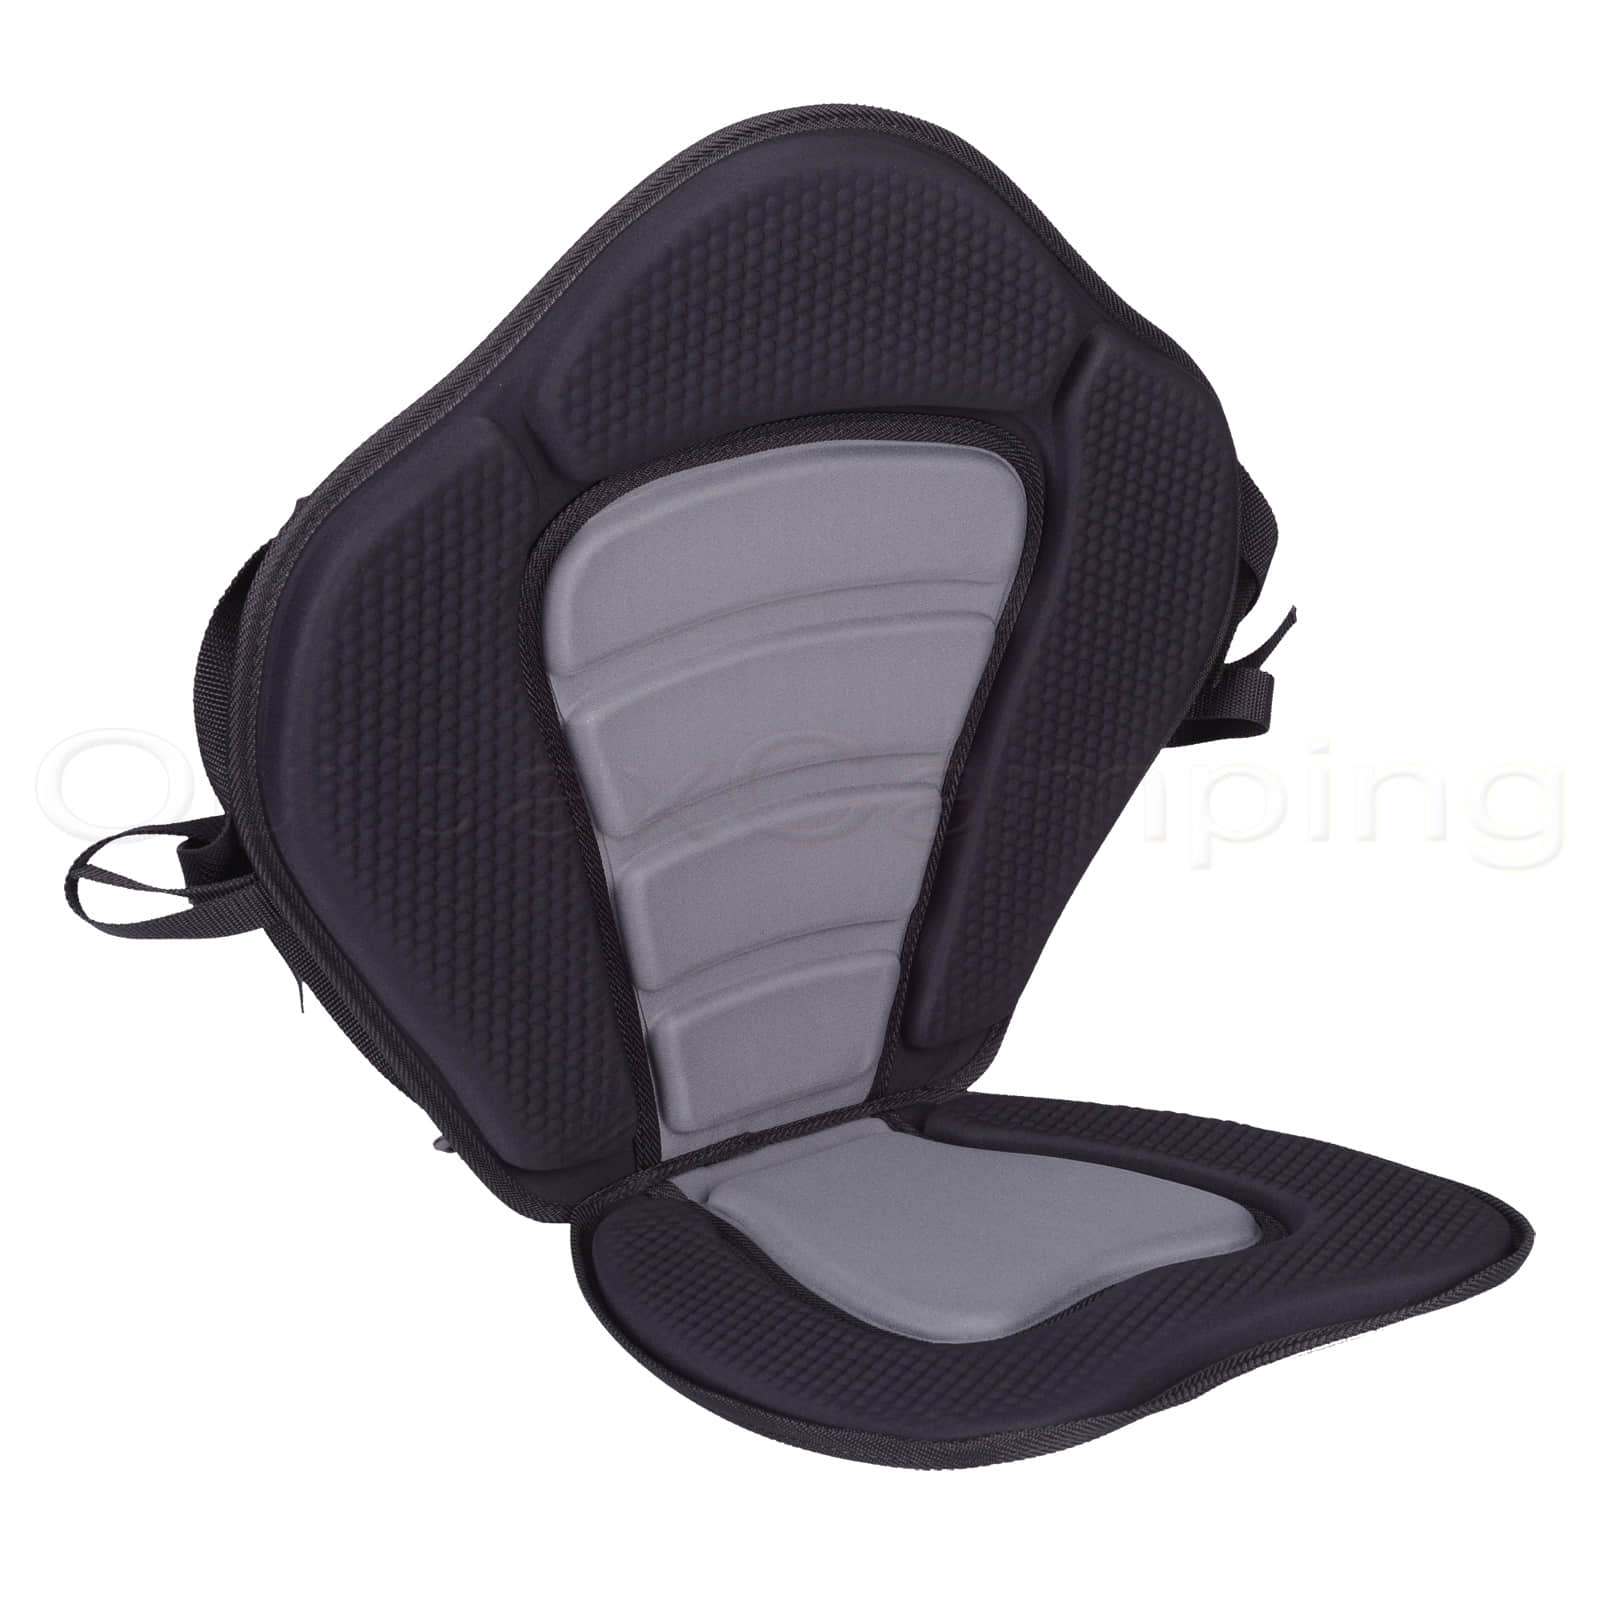 NEW Deluxe Kayak Canoe Fishing Backrest Seat Adjustable Padded Black